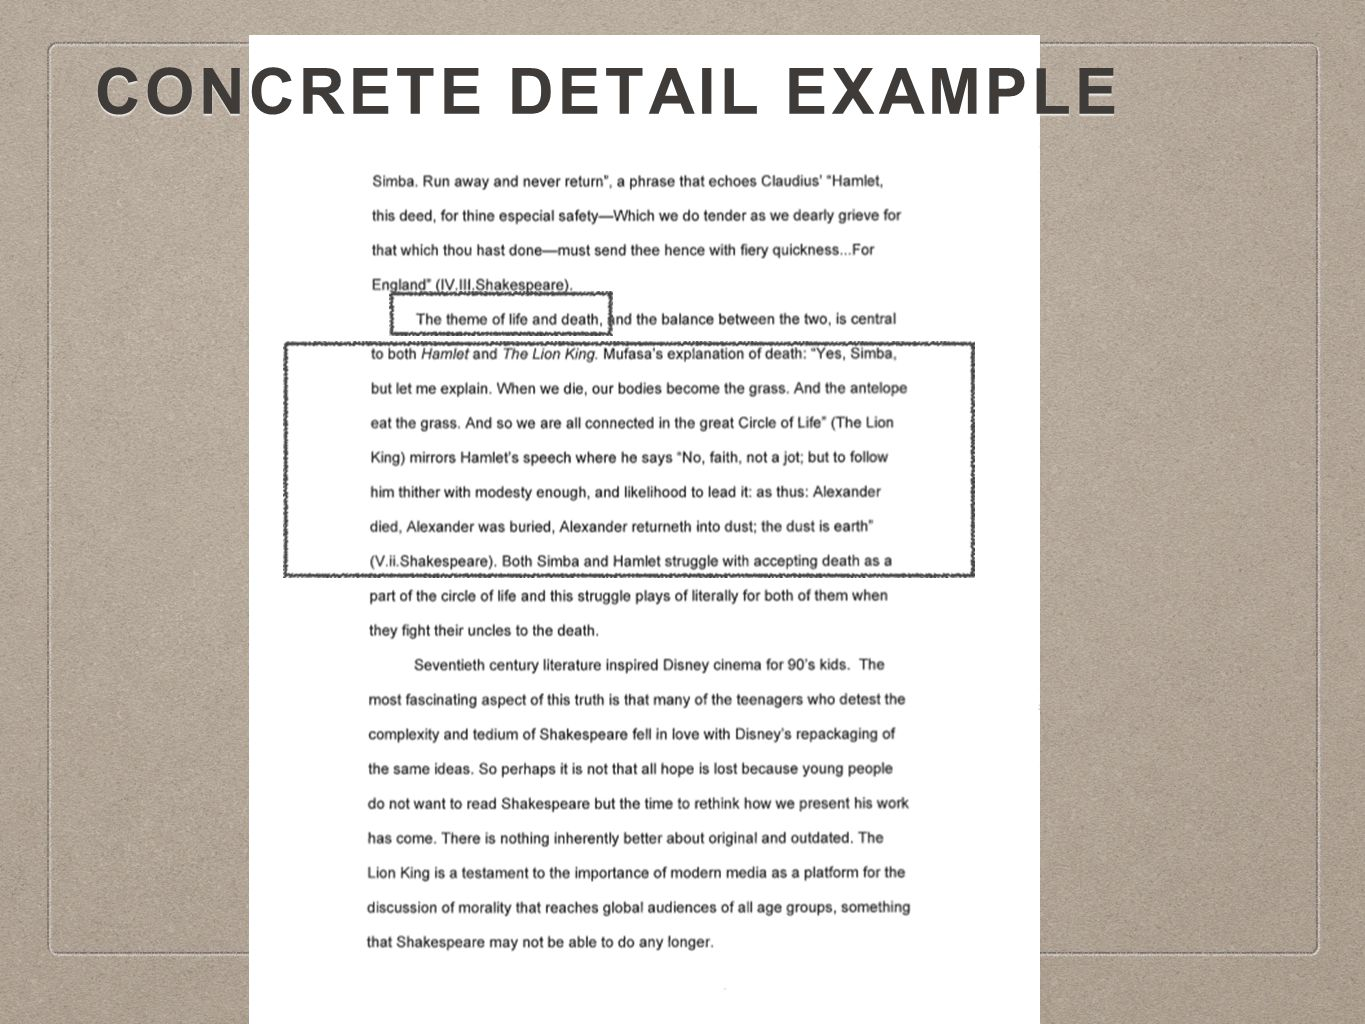 what is a concrete detail